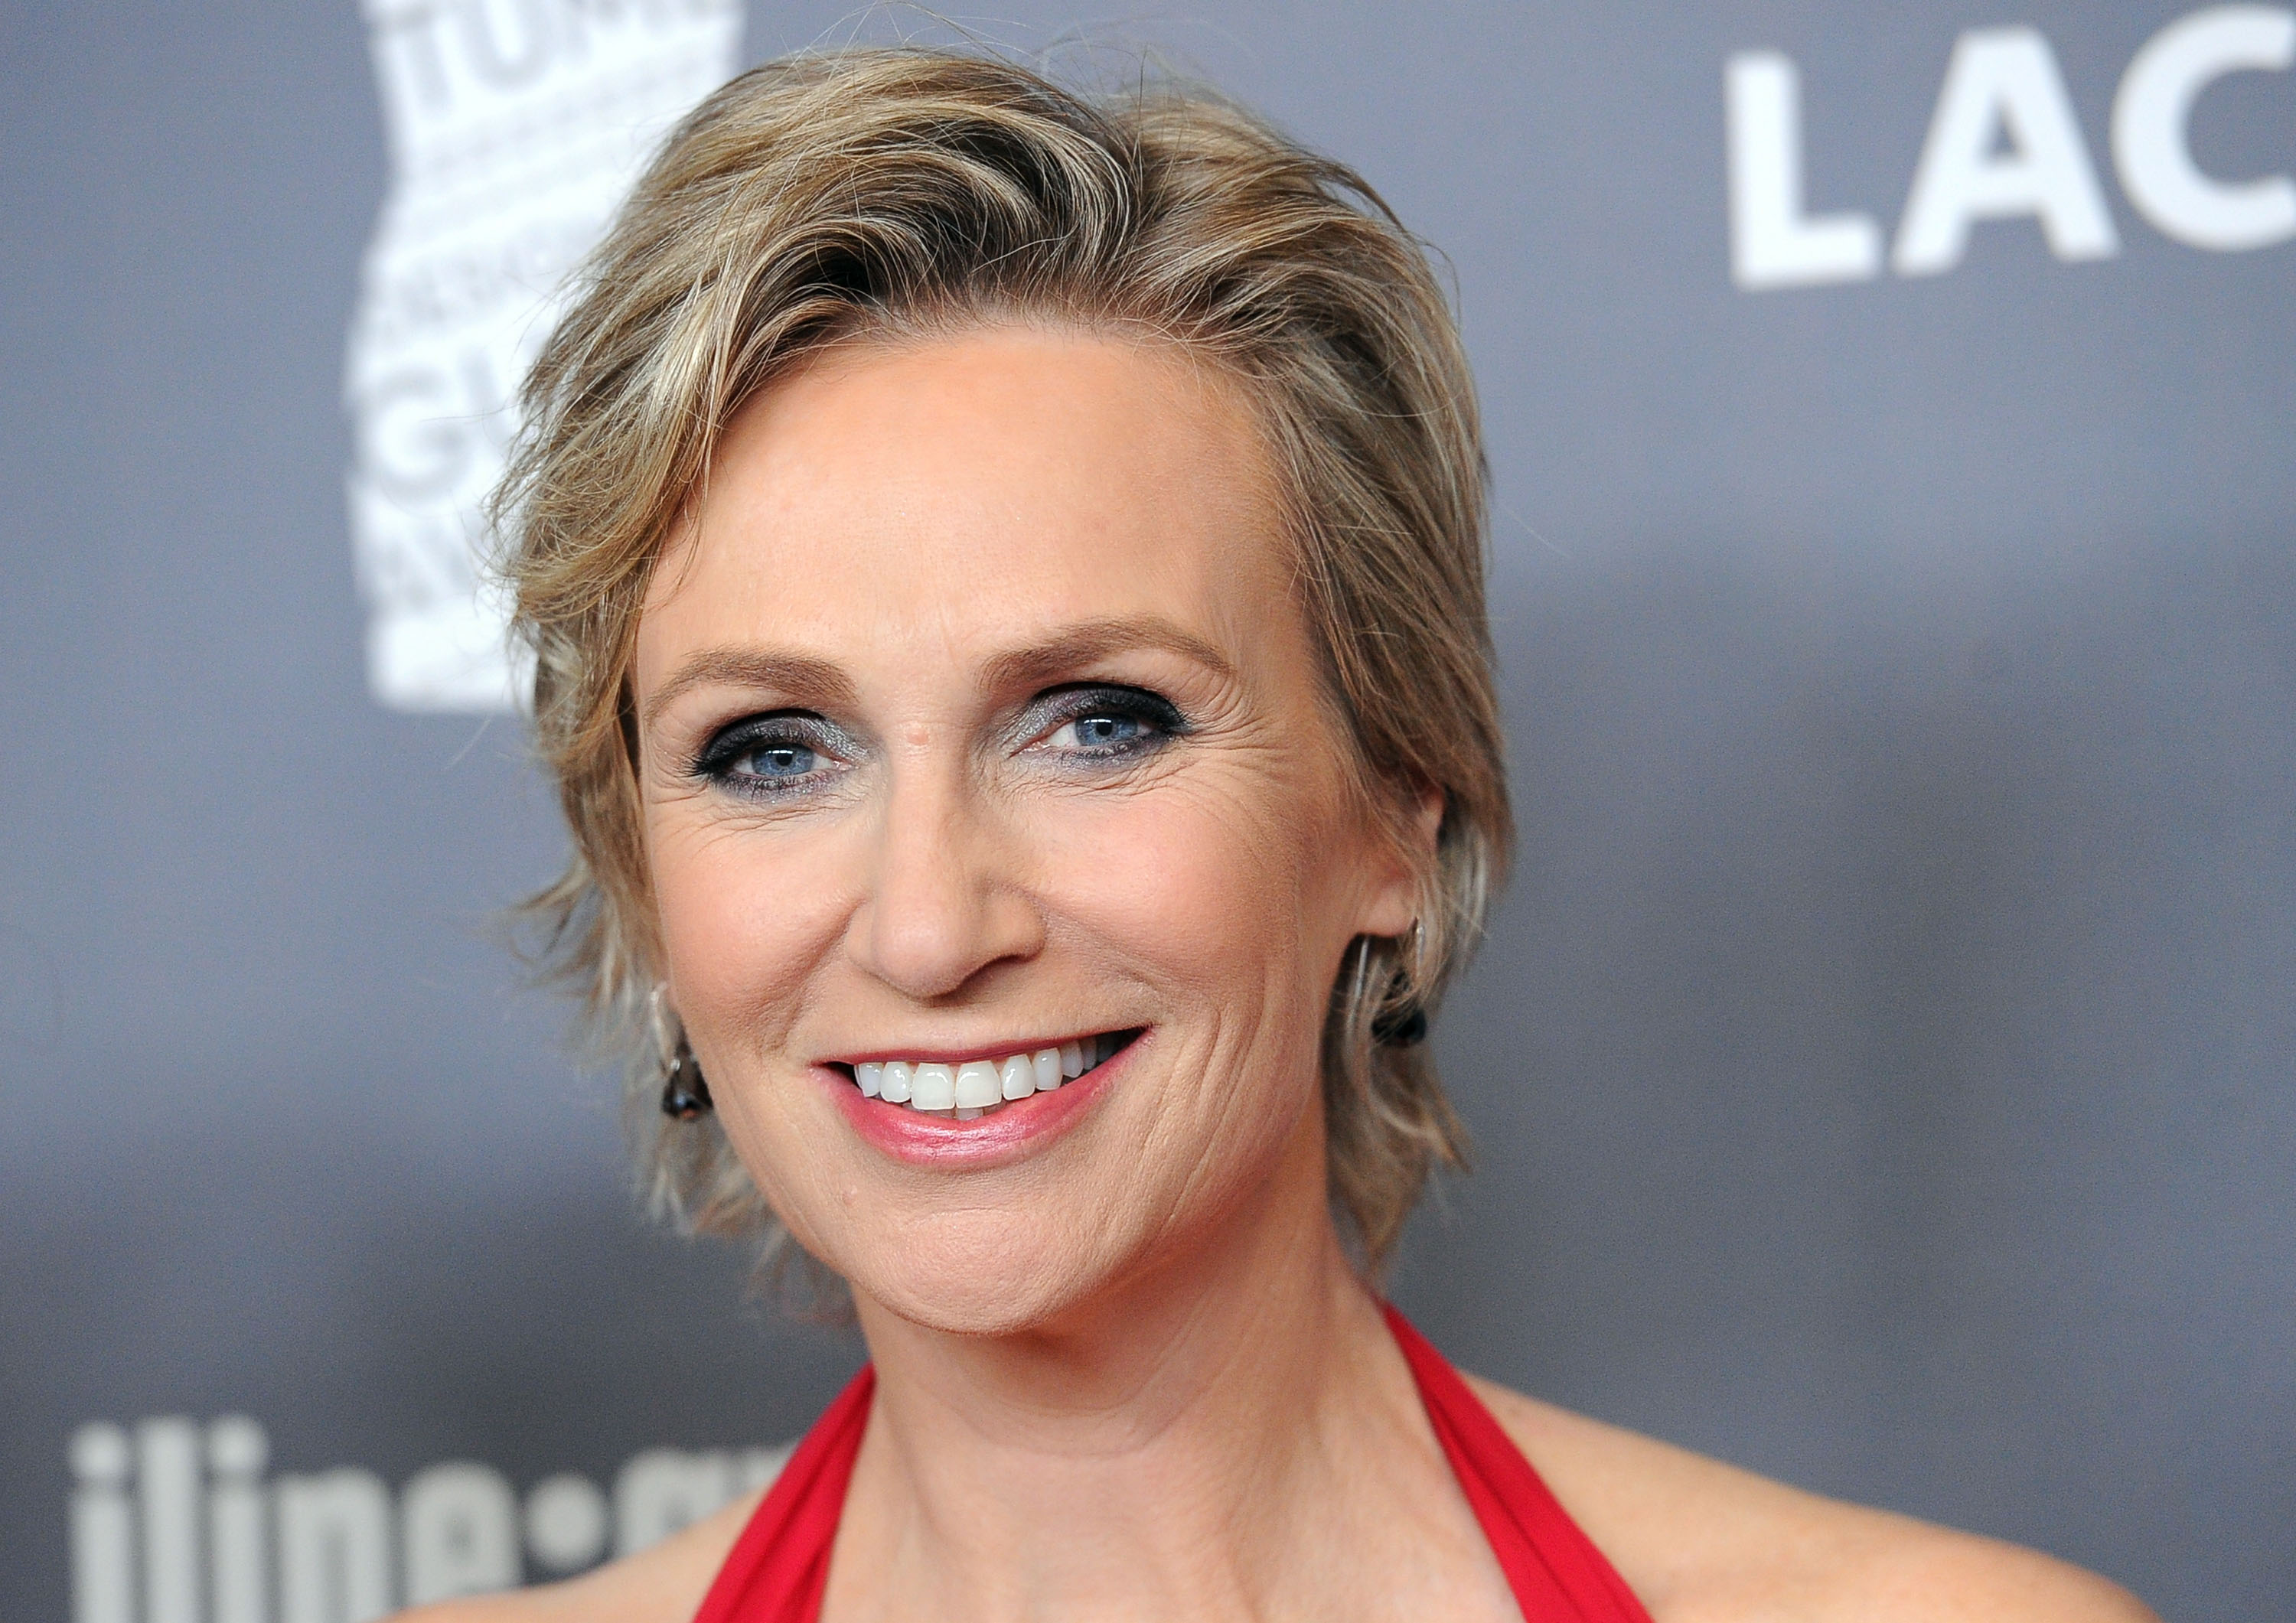 Tonight: Jane Lynch takes over